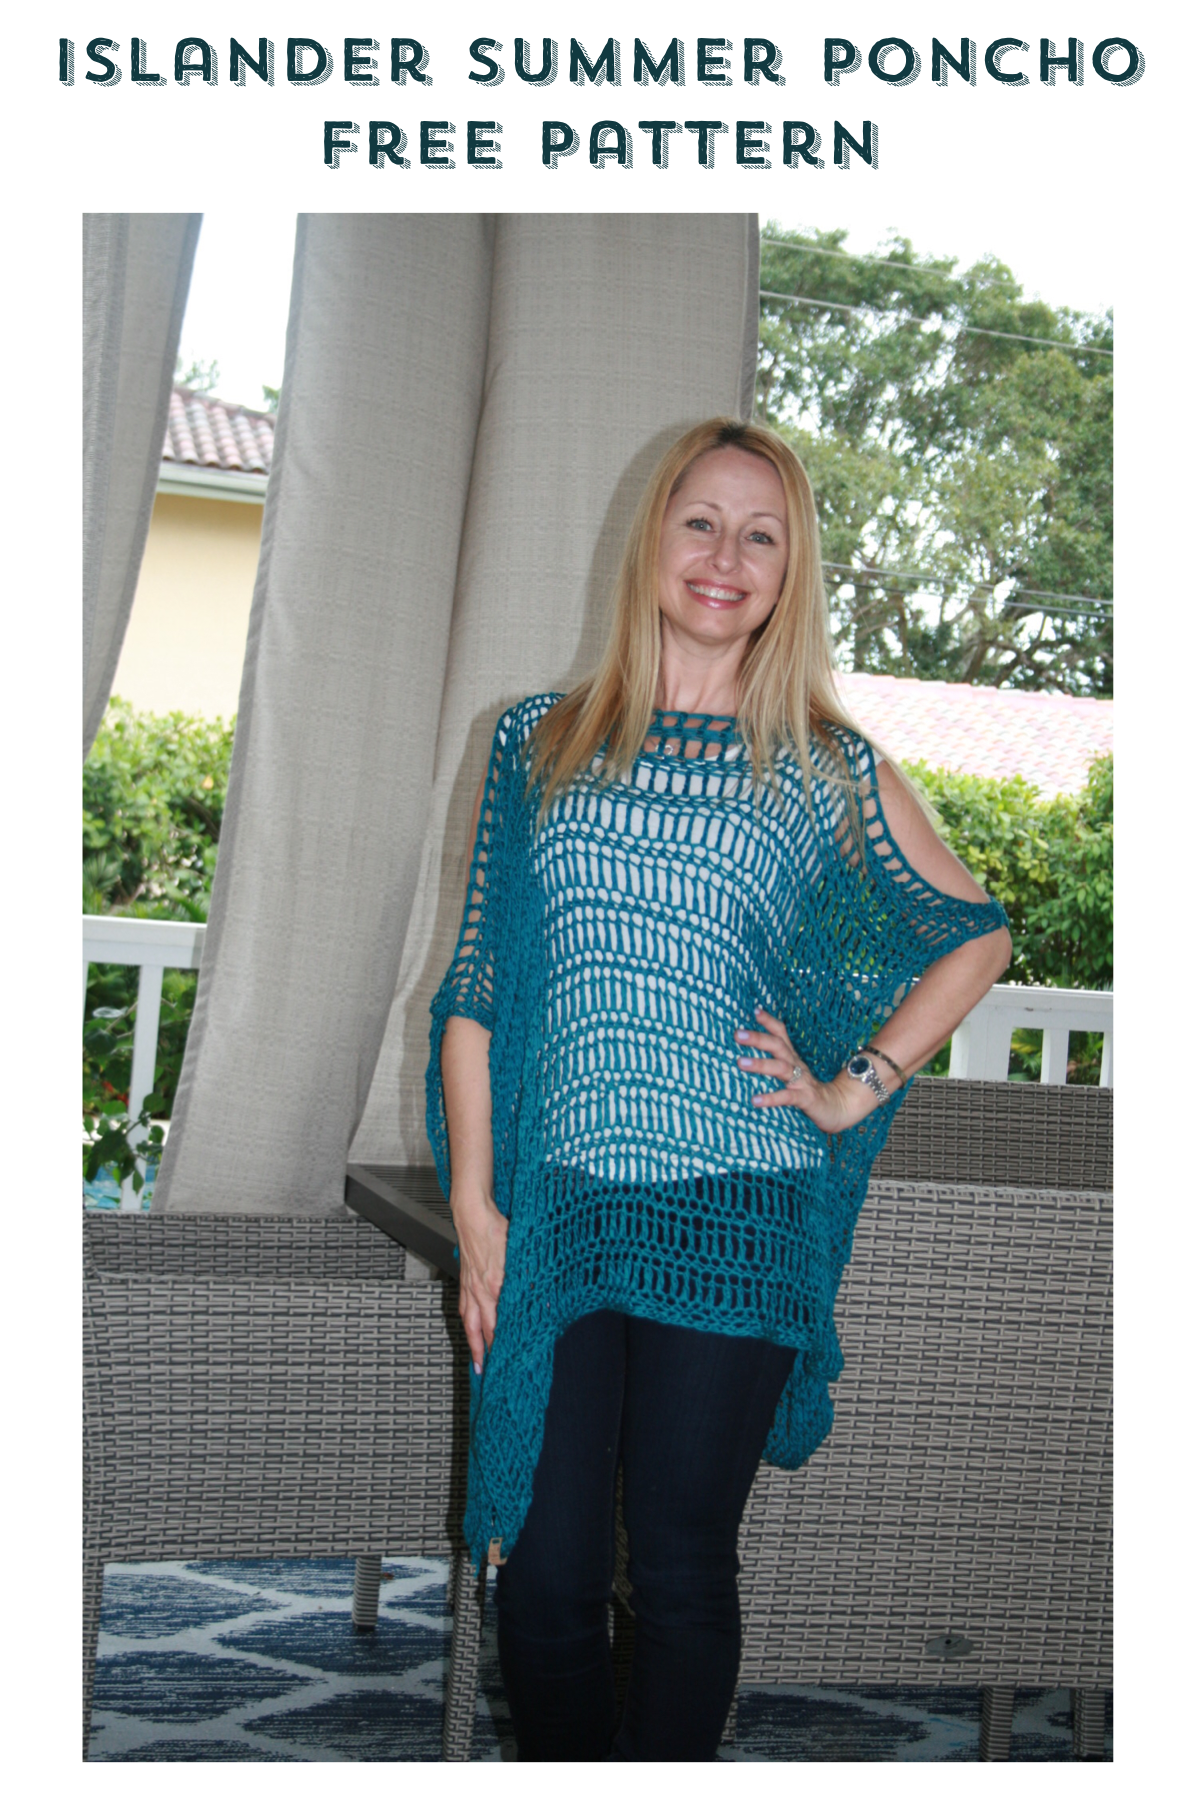 Islander Summer Poncho Cover Up Free Crochet Pattern Stitch Hustle